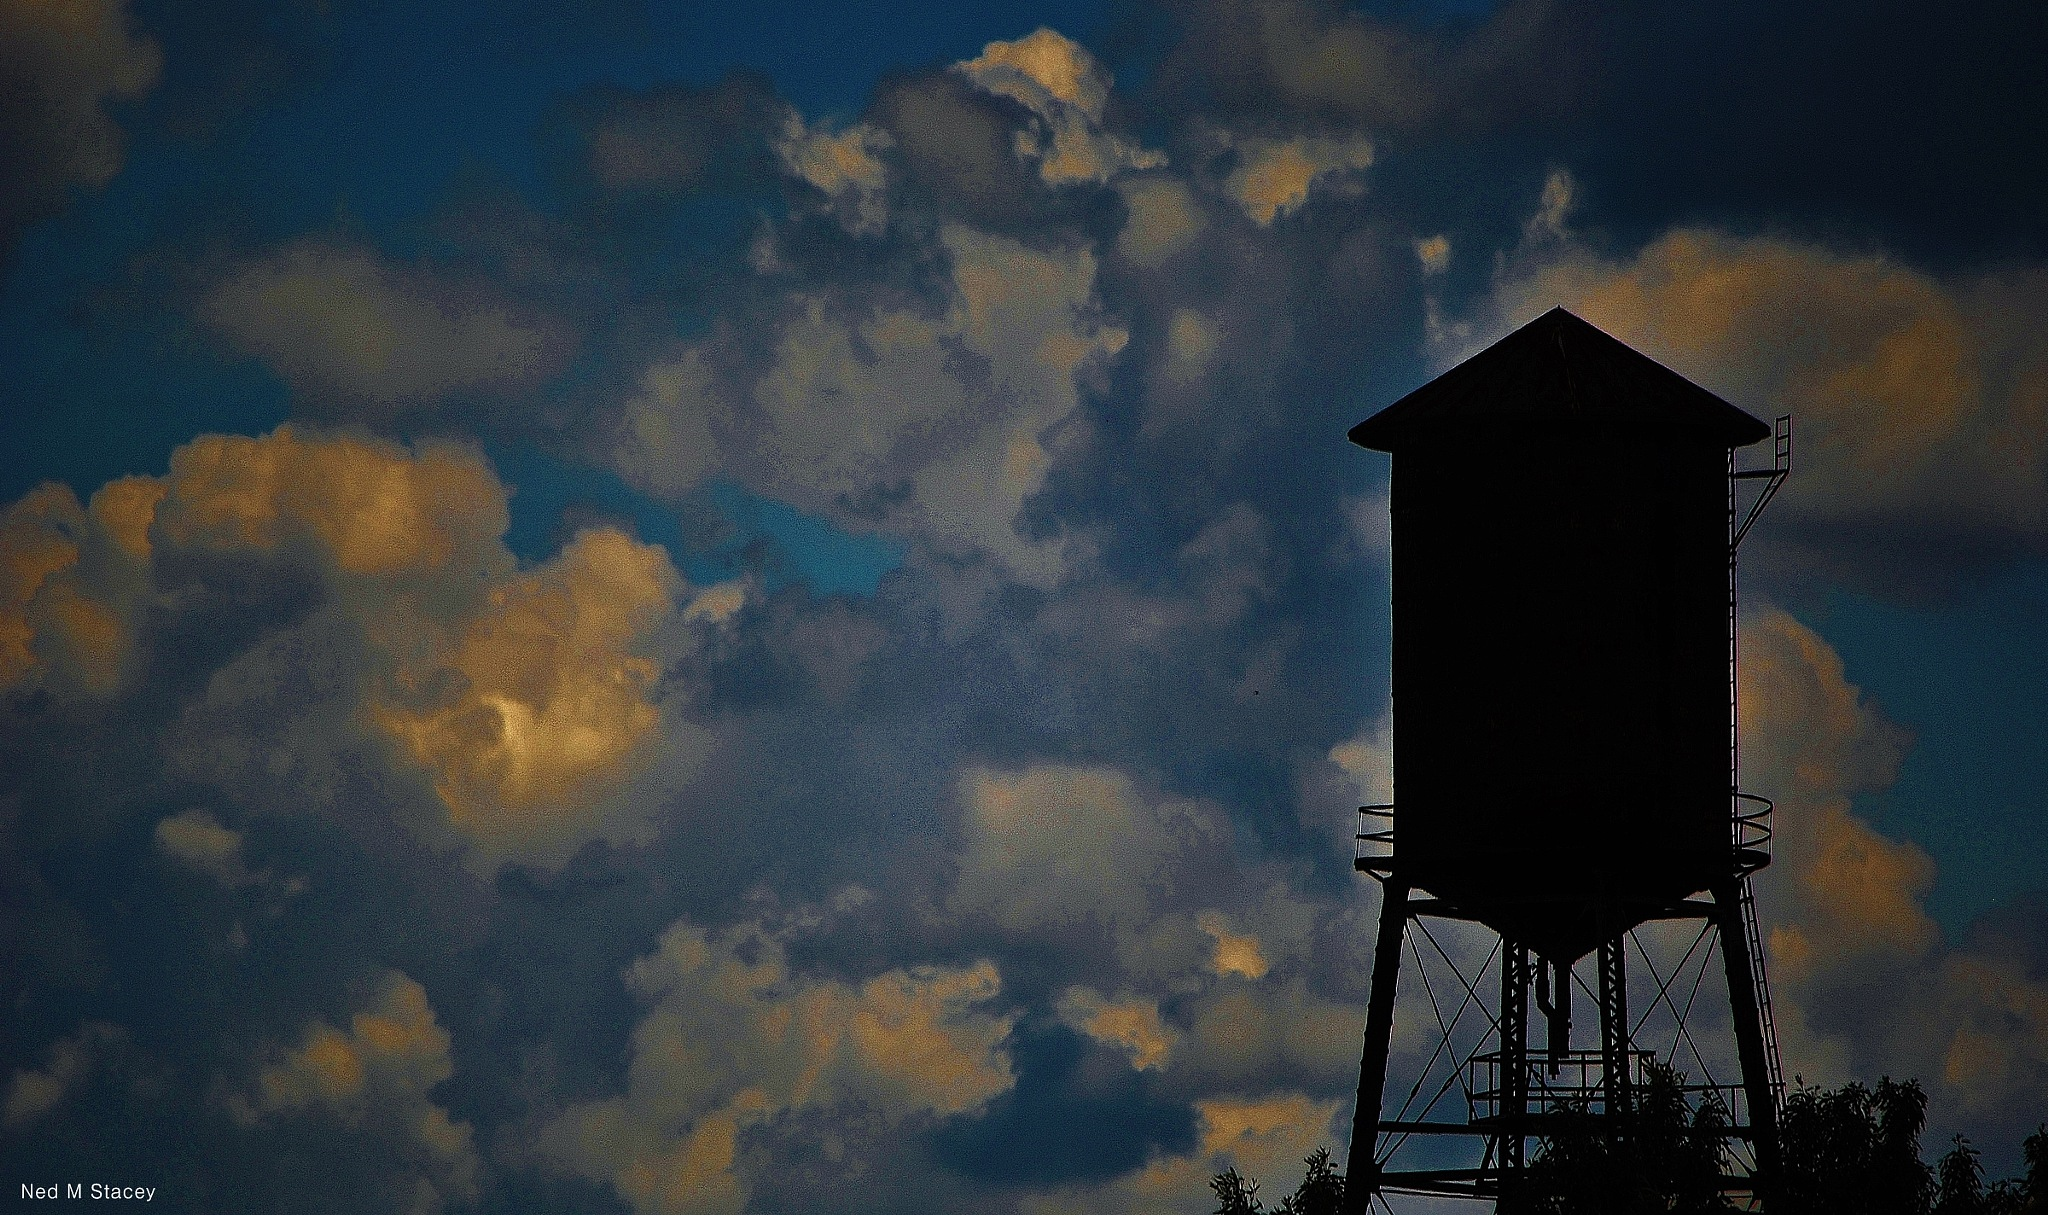 Water Tower Atlanta by NED